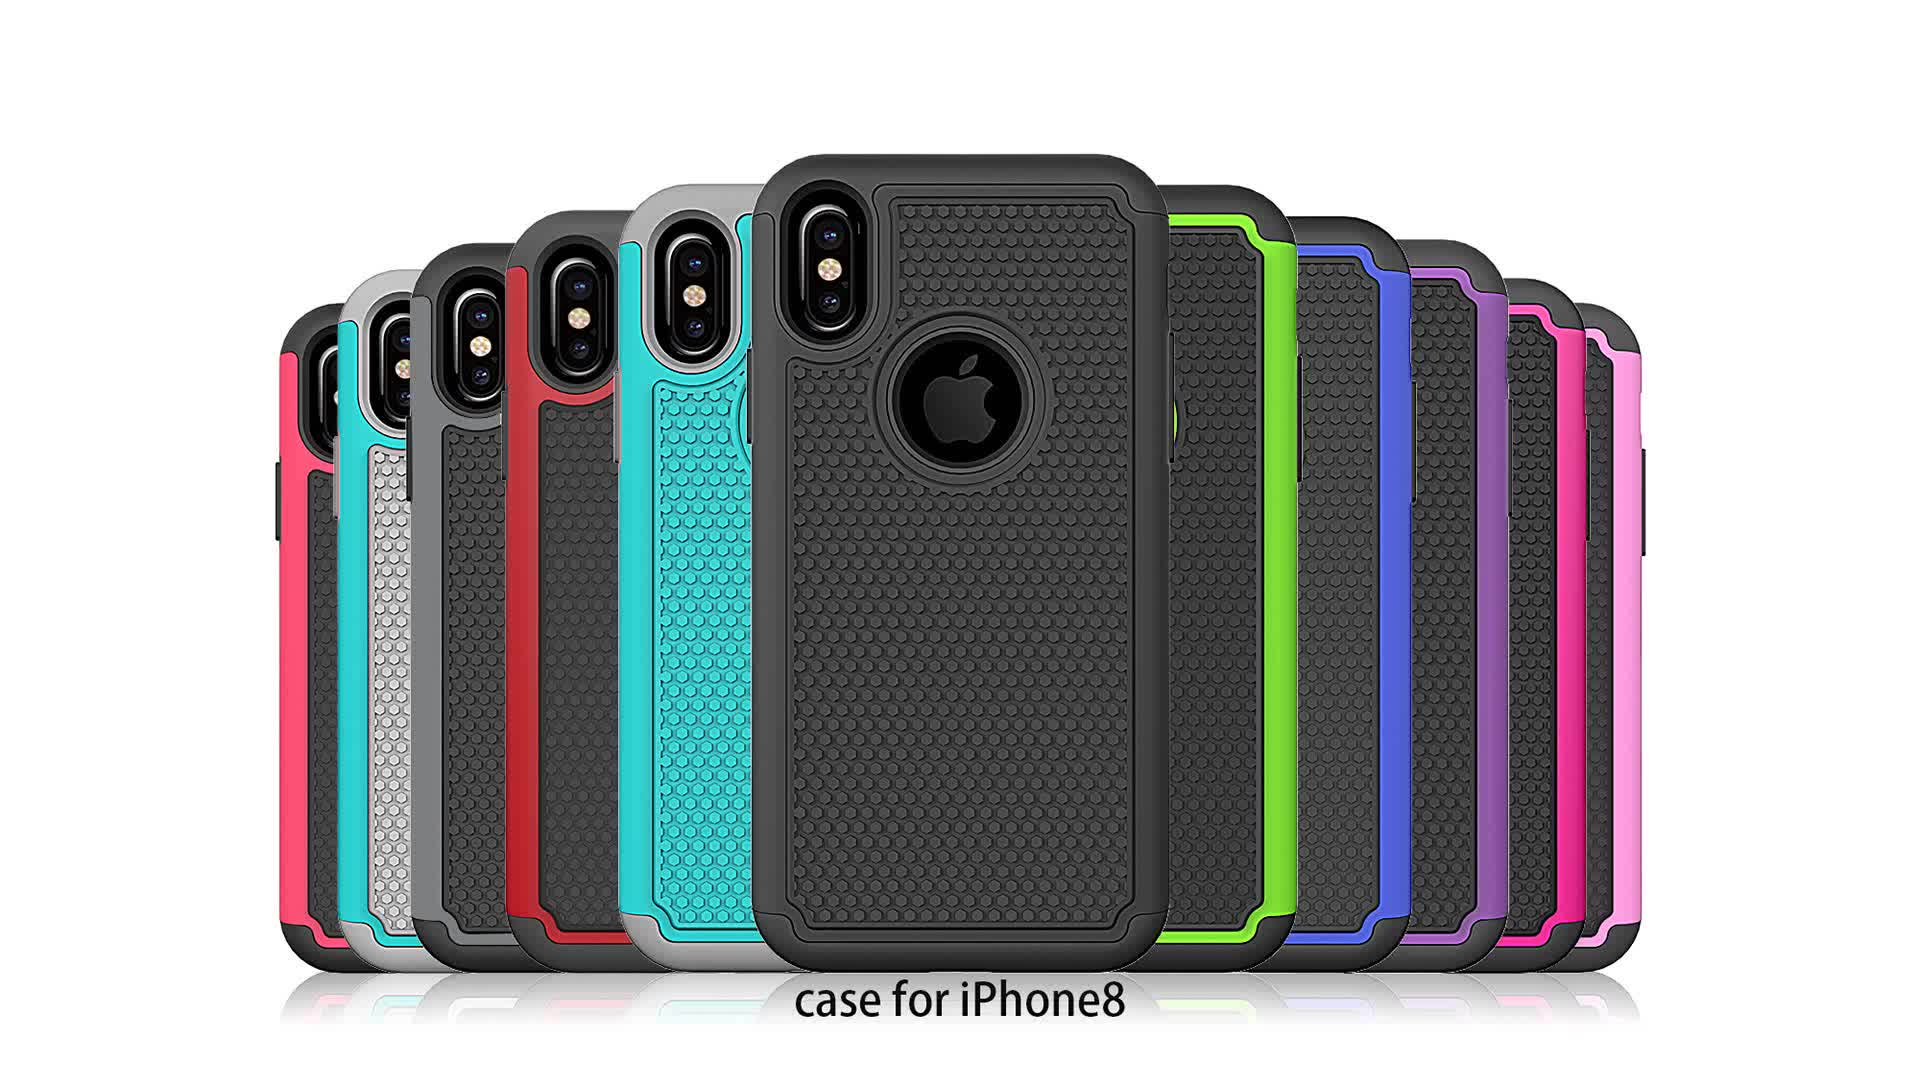 timeless design a84a7 9c7ef 2 In 1 Phone Case,For Iphone X Case Covers,Mobile Phone Shell For Iphone X  - Buy 2 In 1 Phone Case,For Iphone X Case Covers,Mobile Phone Shell For ...